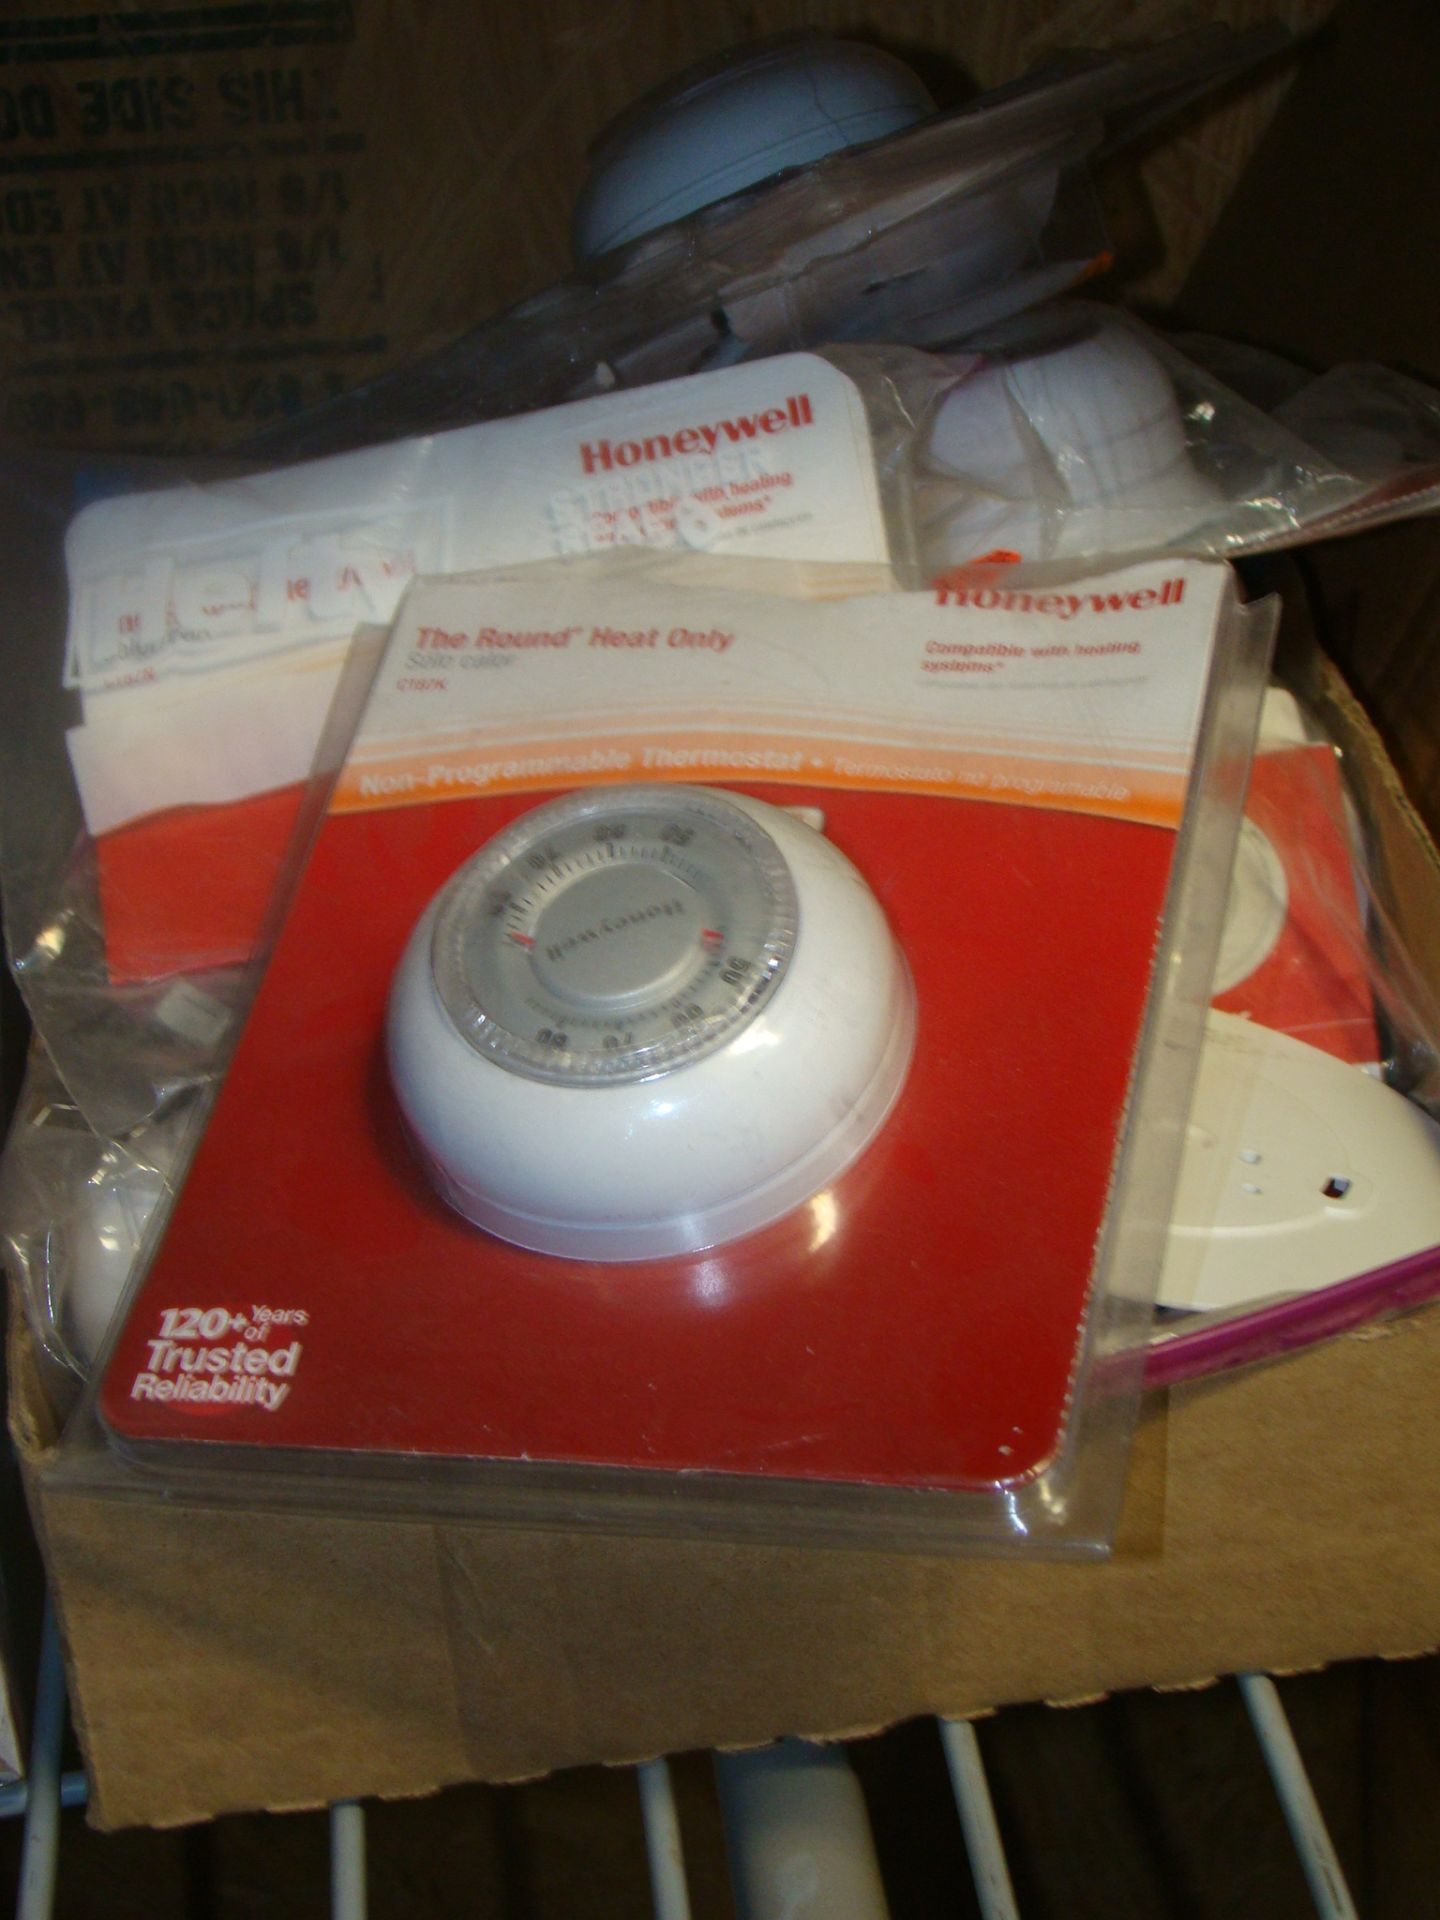 Lot 55 - Lot of Honeywell Round Heat only thermostat